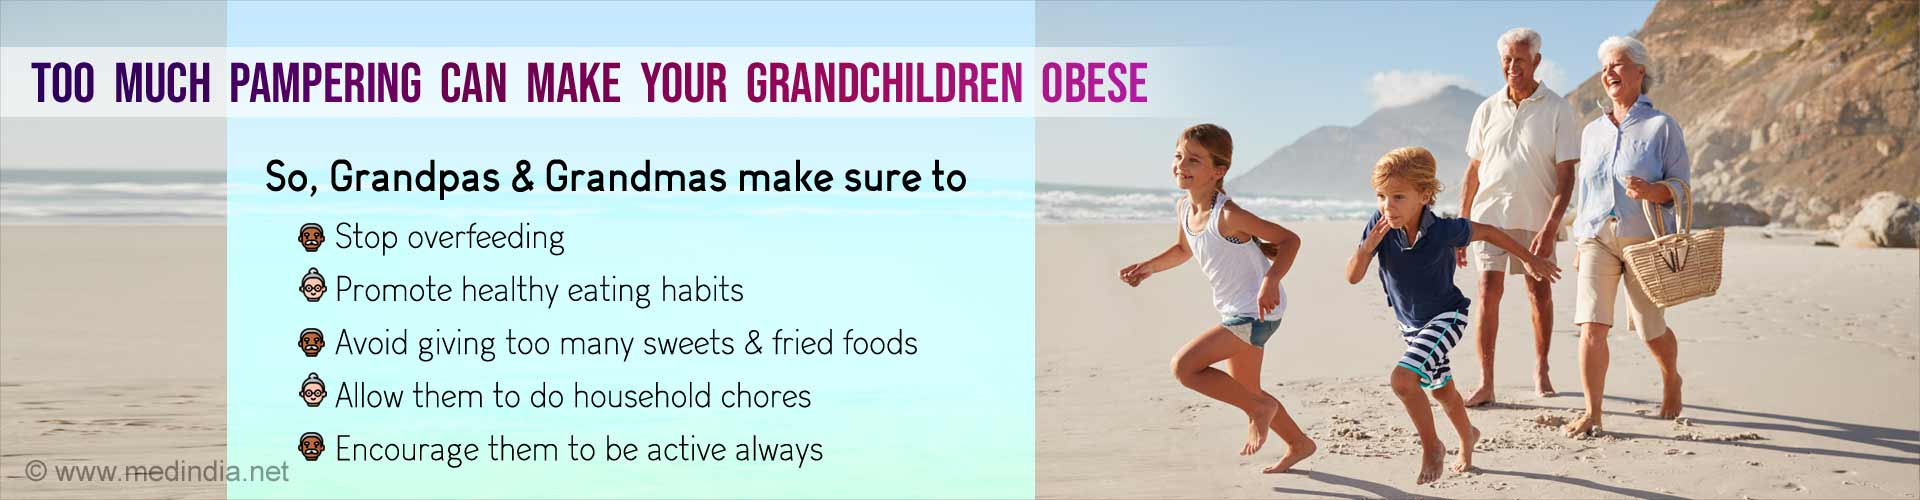 Chubby Kids: Over-pampering Grandparents More Likely to Raise Obese Grandchildren